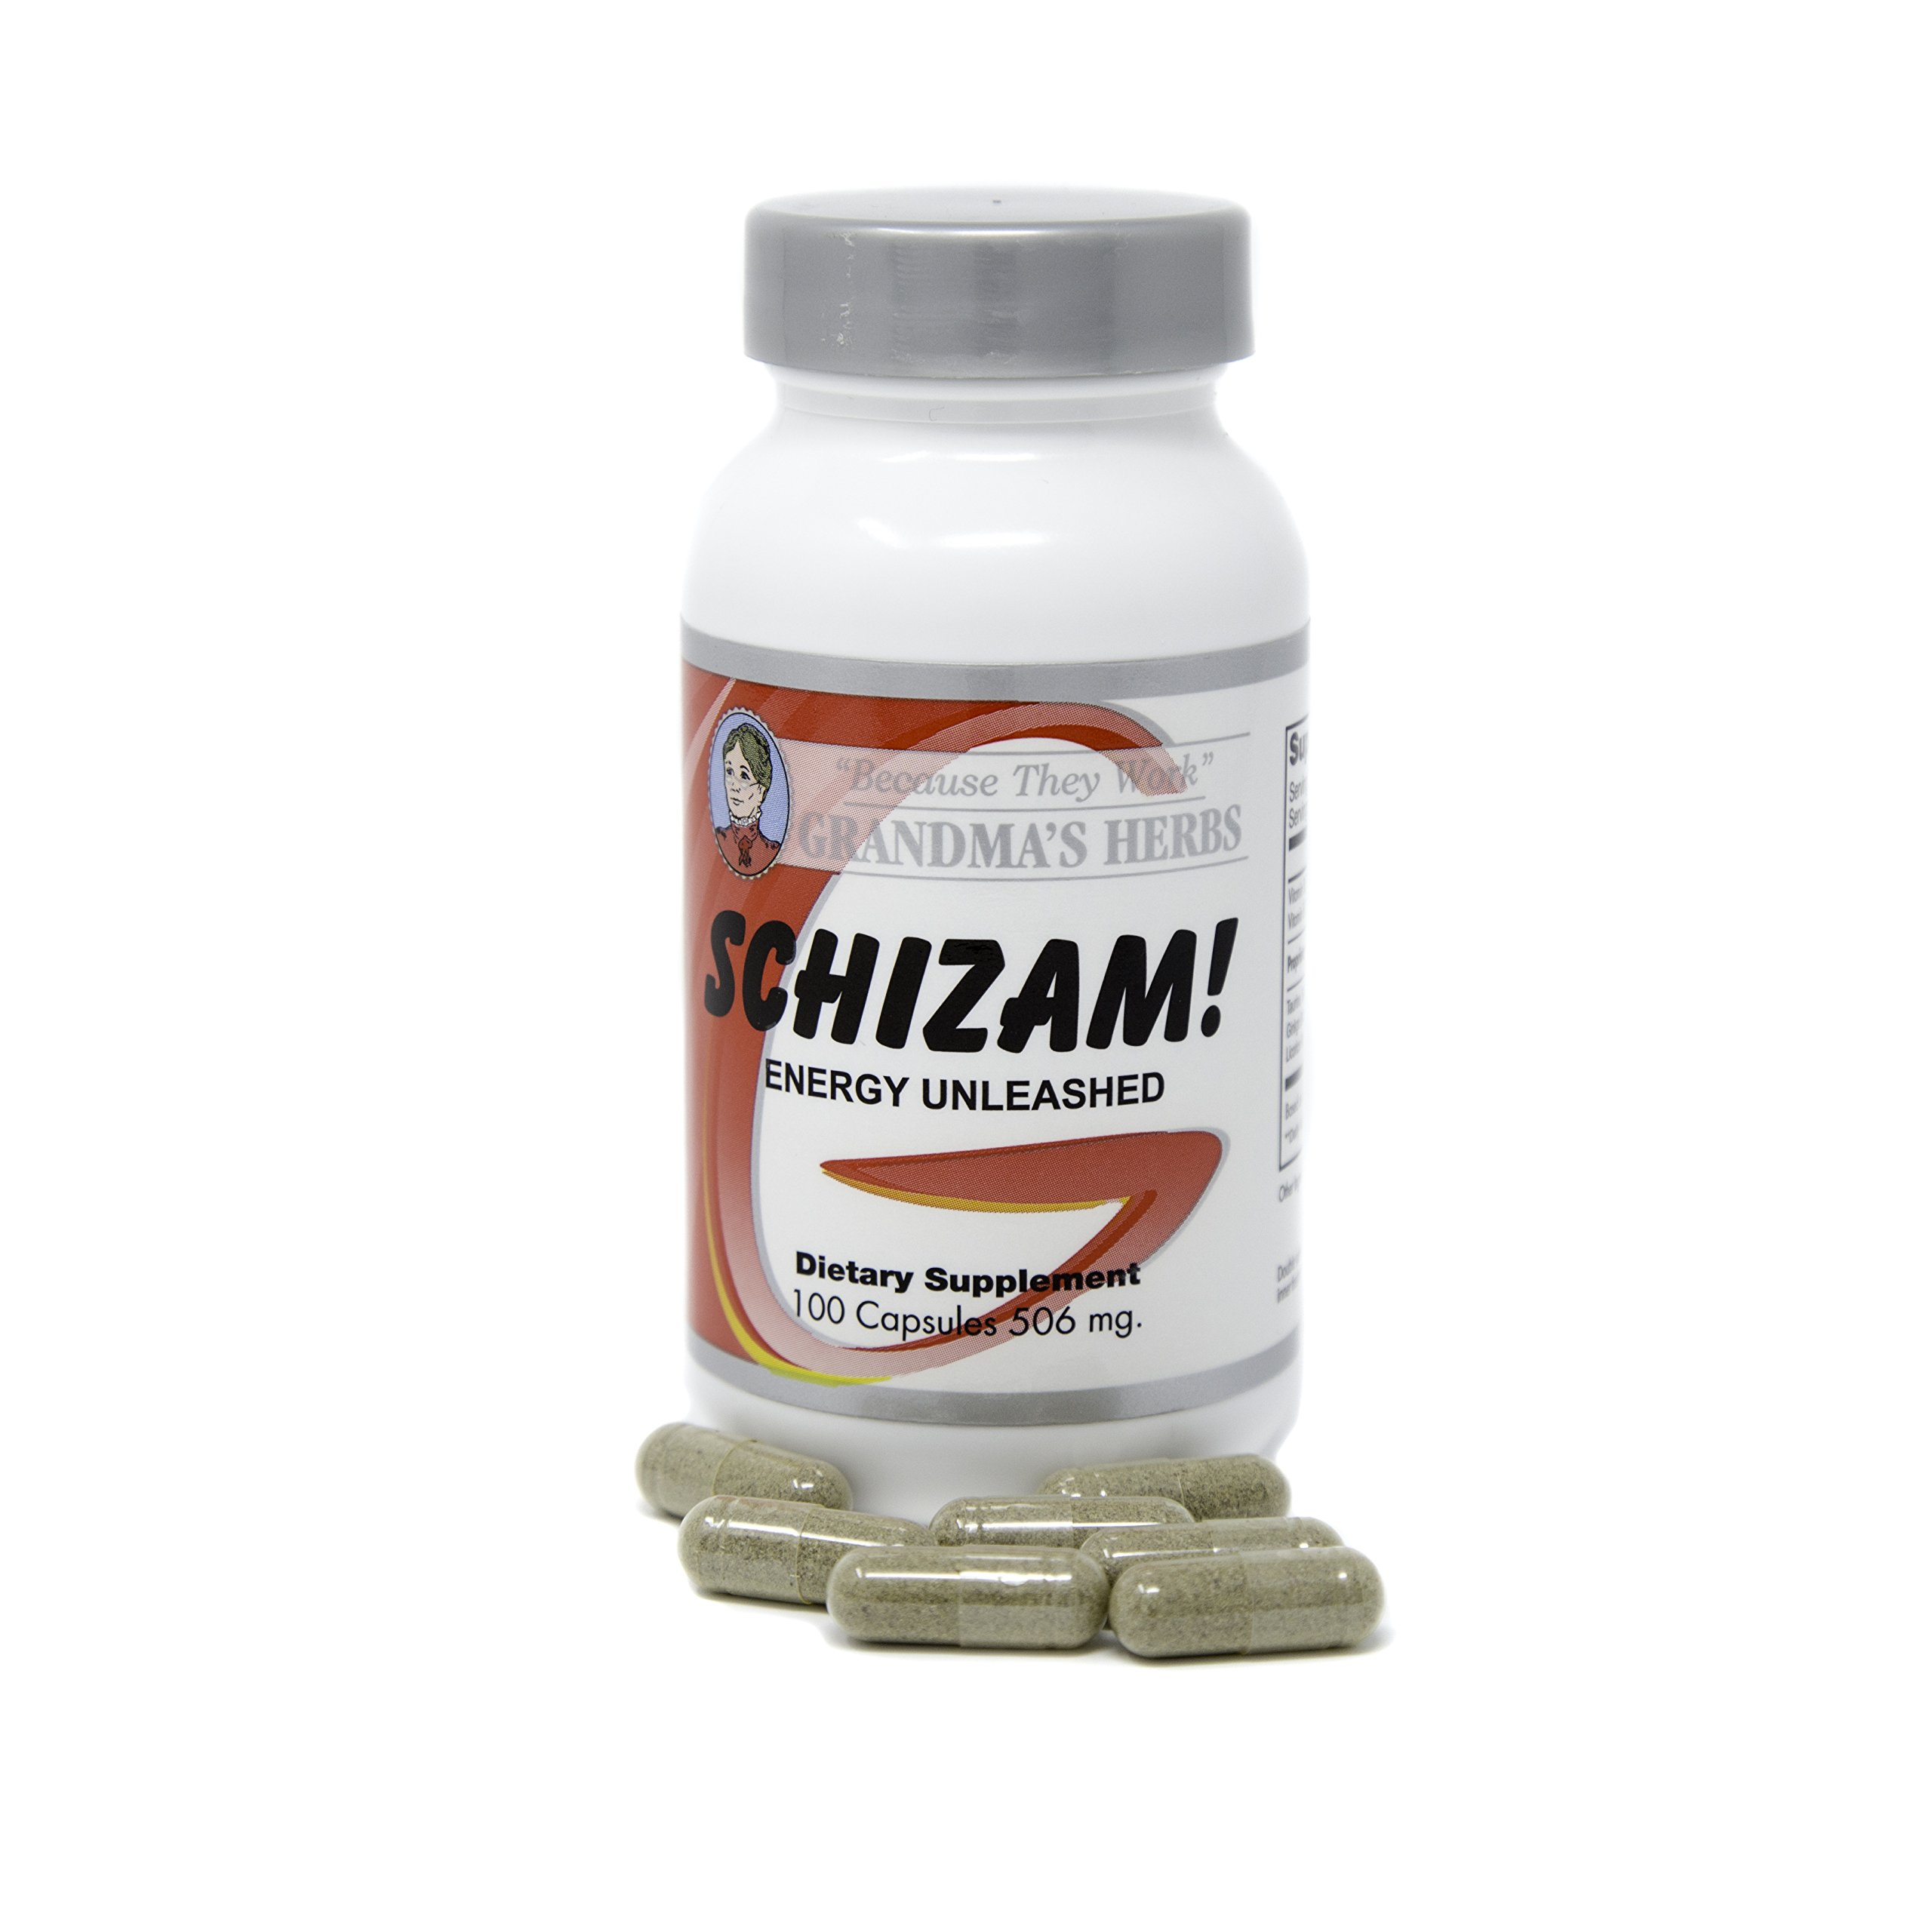 Grandma's Herbs Schizam! Energy Unleashed Herbal Remedy for Natural Boost in Metabolism and Energy - 100 Capsules